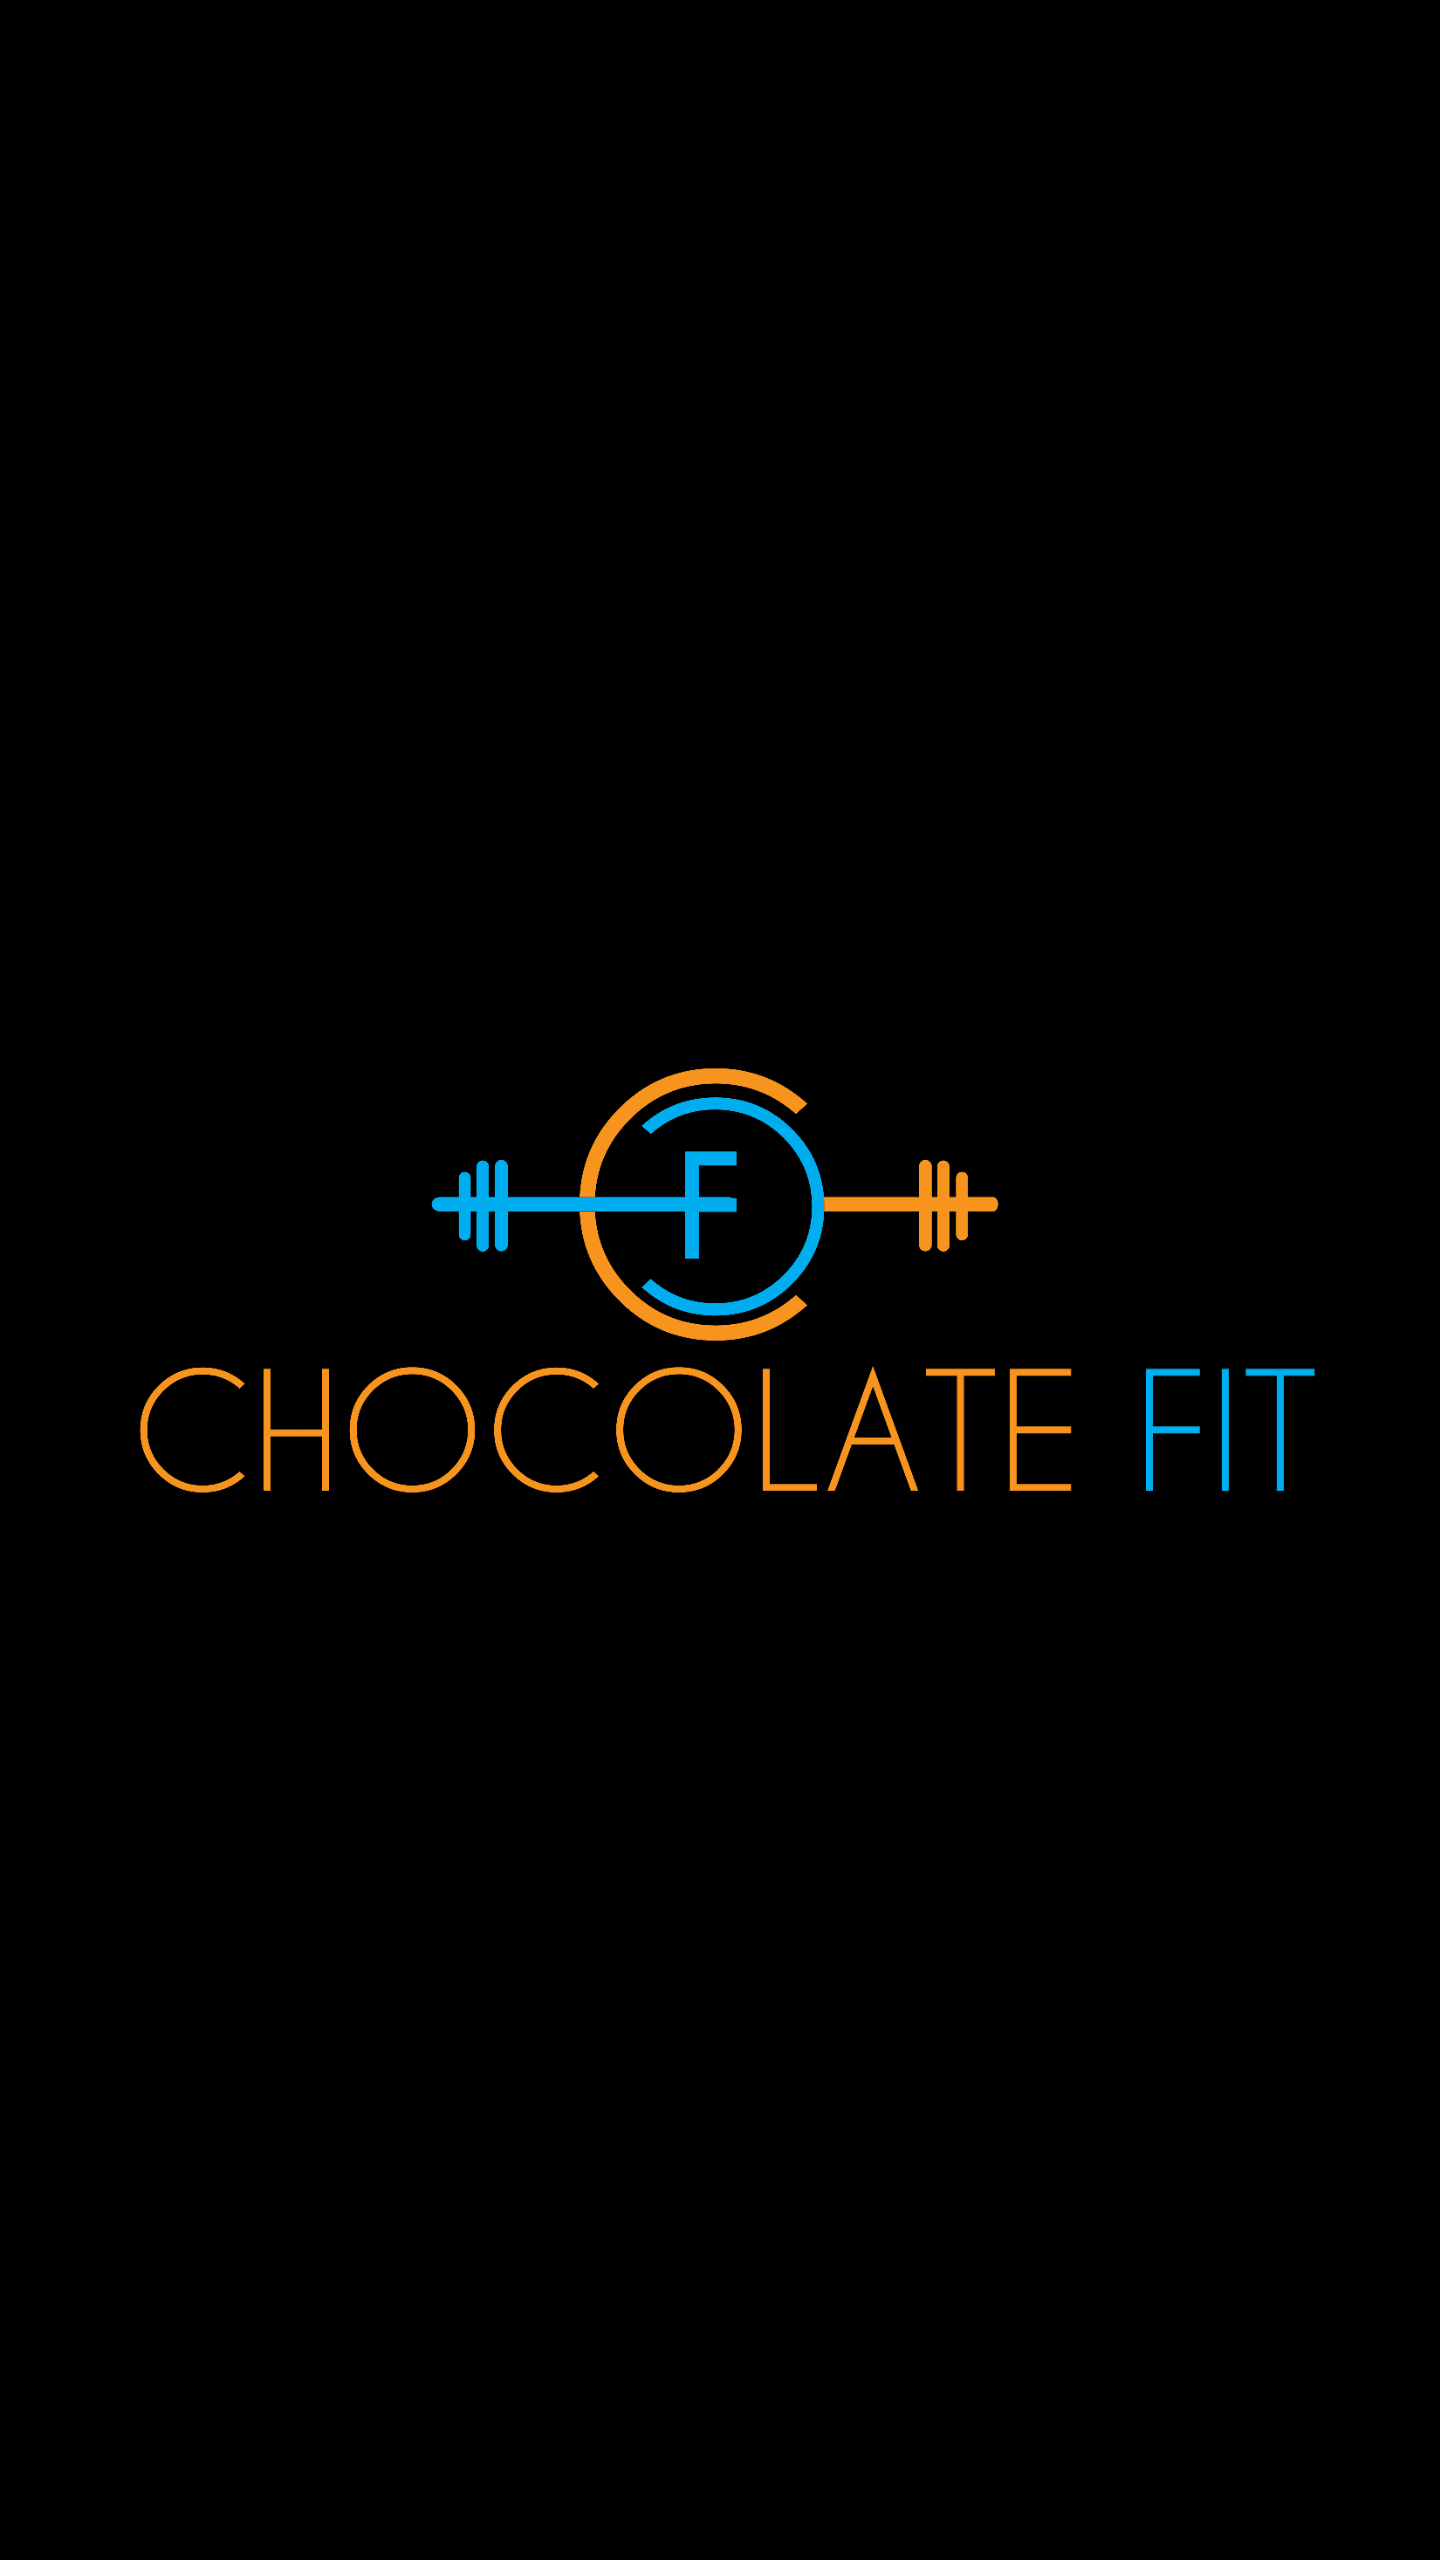 Chocolate Fit